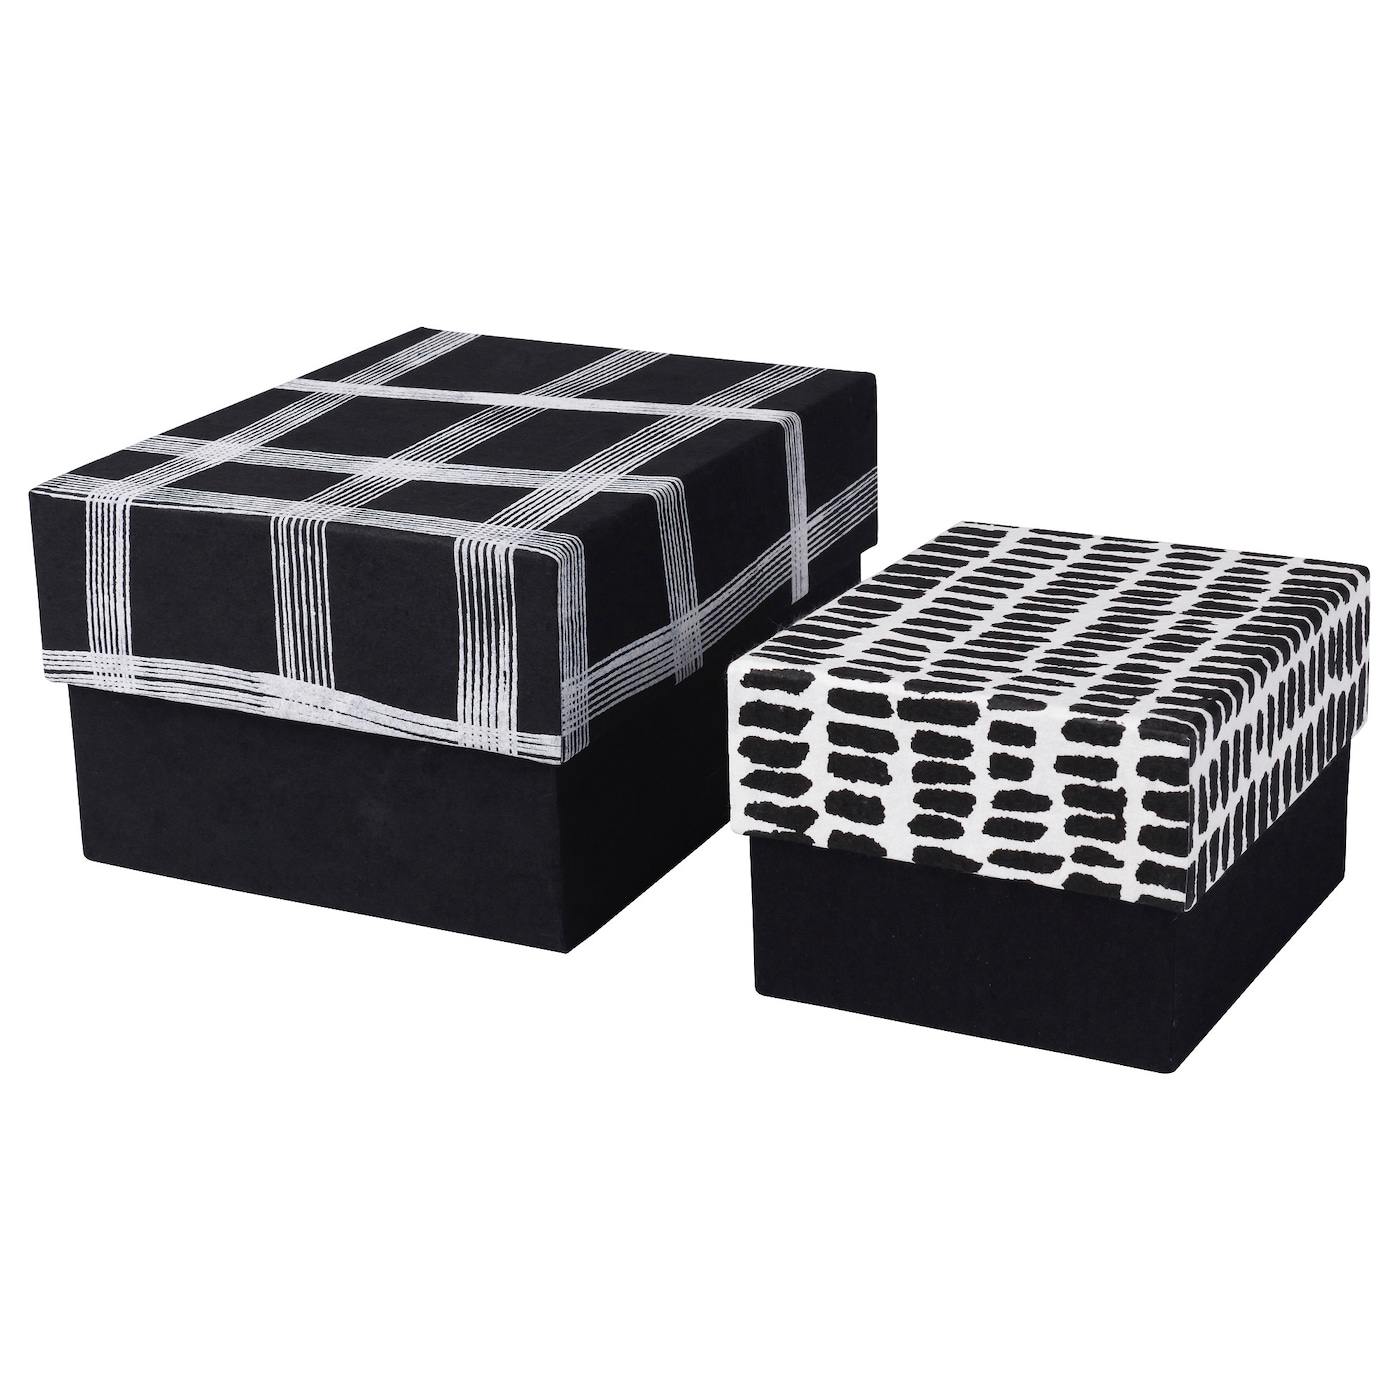 IKEA EFTERTANKE gift box, set of 2 Handmade by skilled craftspeople, making each one unique.